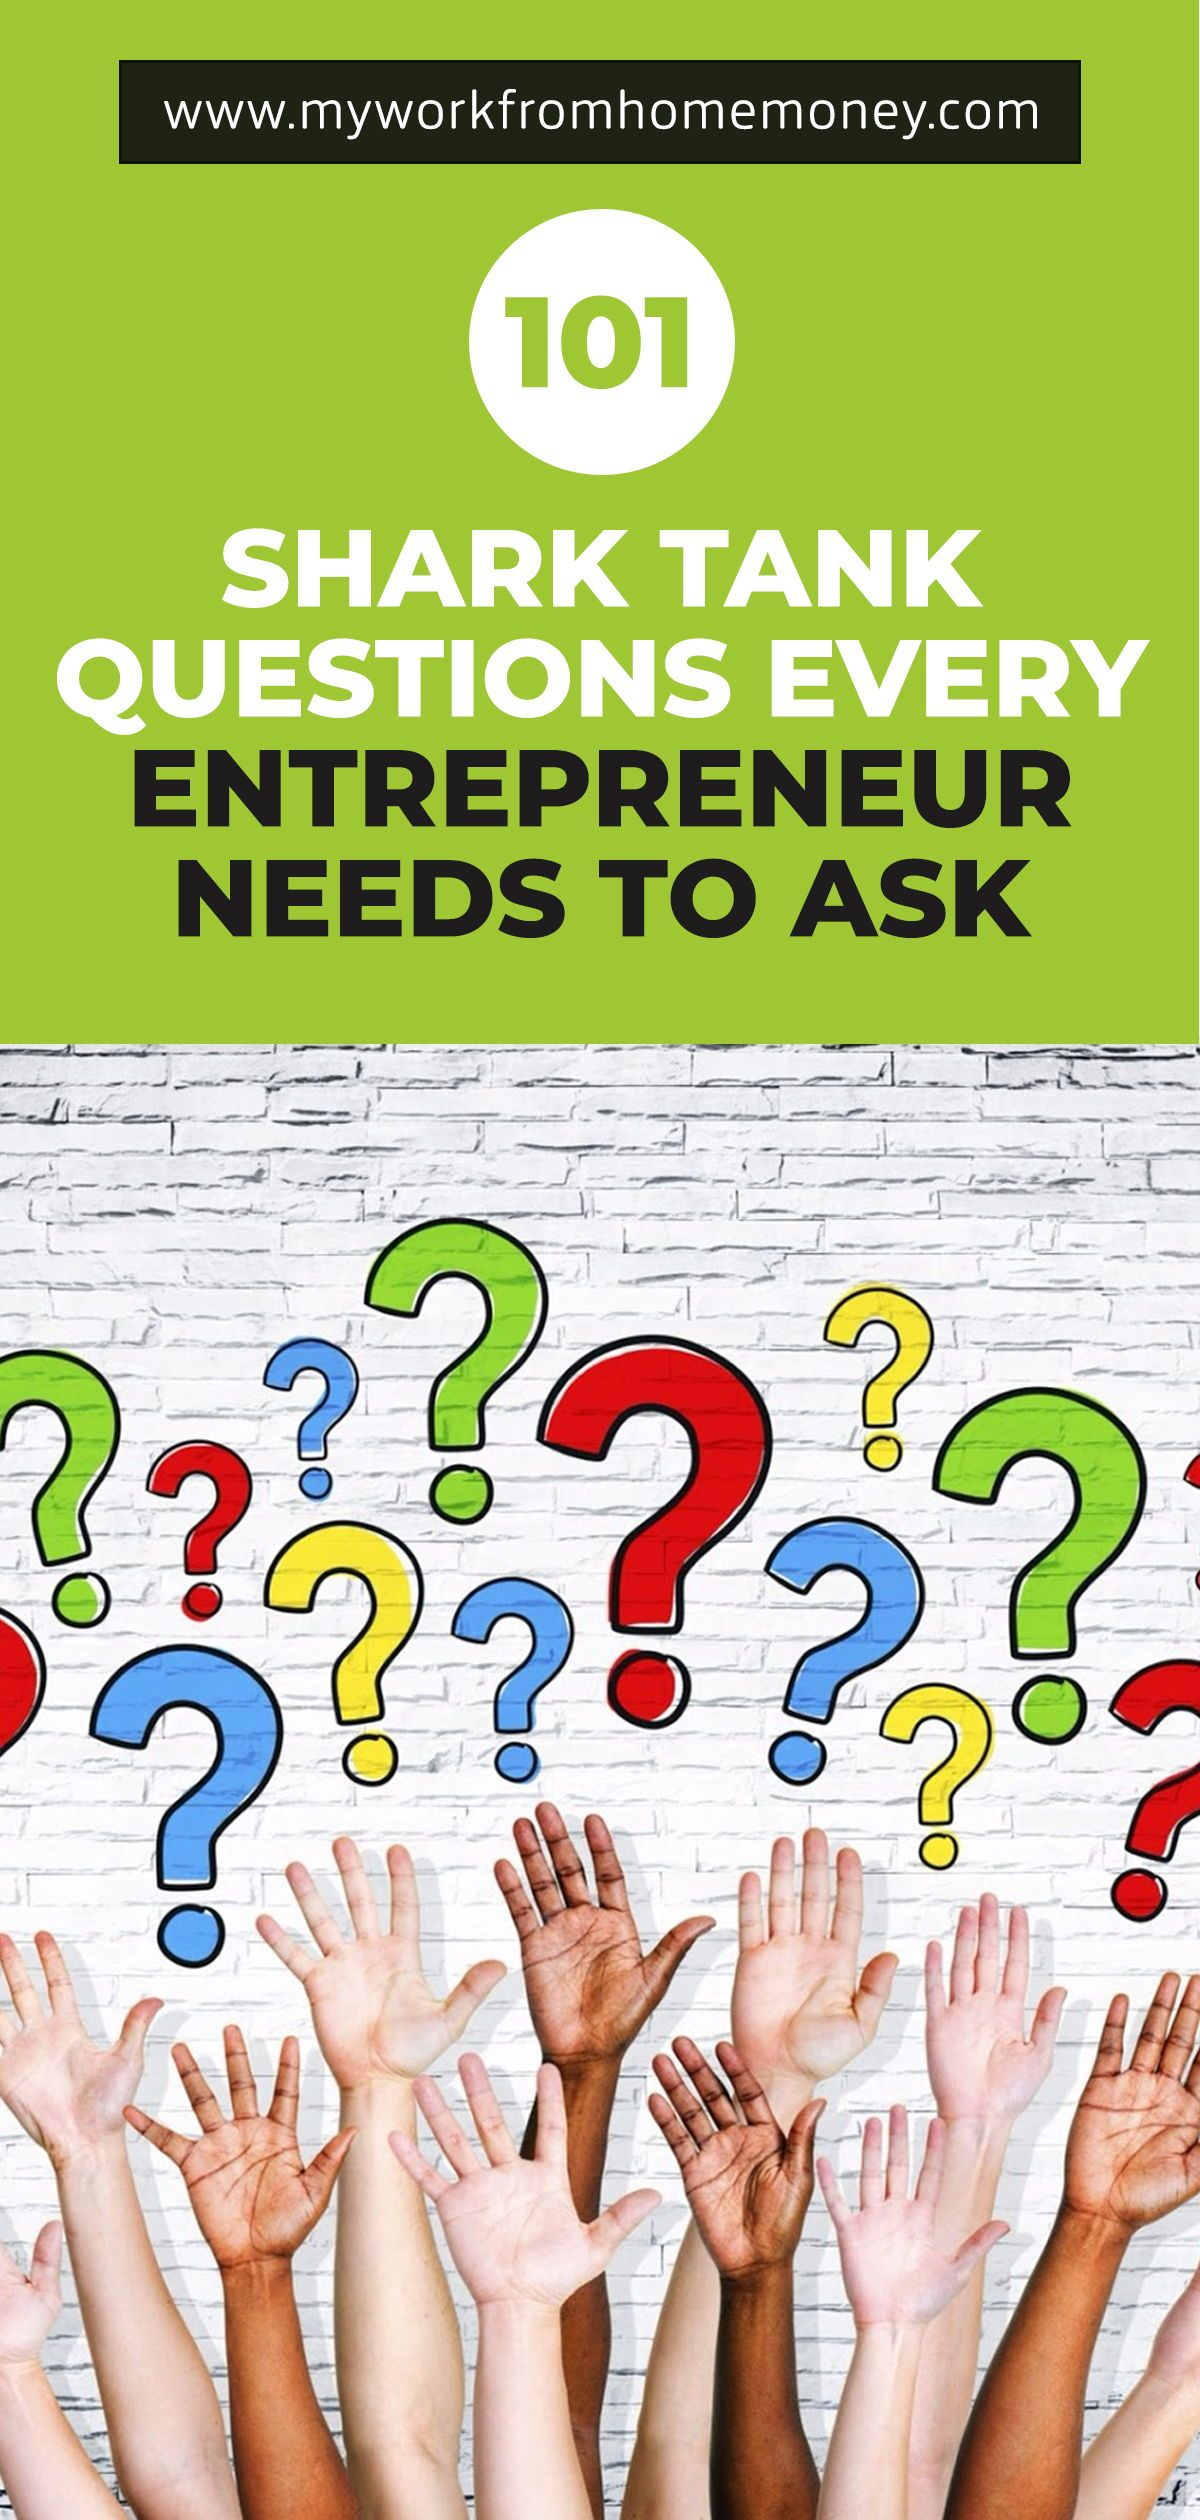 Use these Shark Tank questions to grow your business even